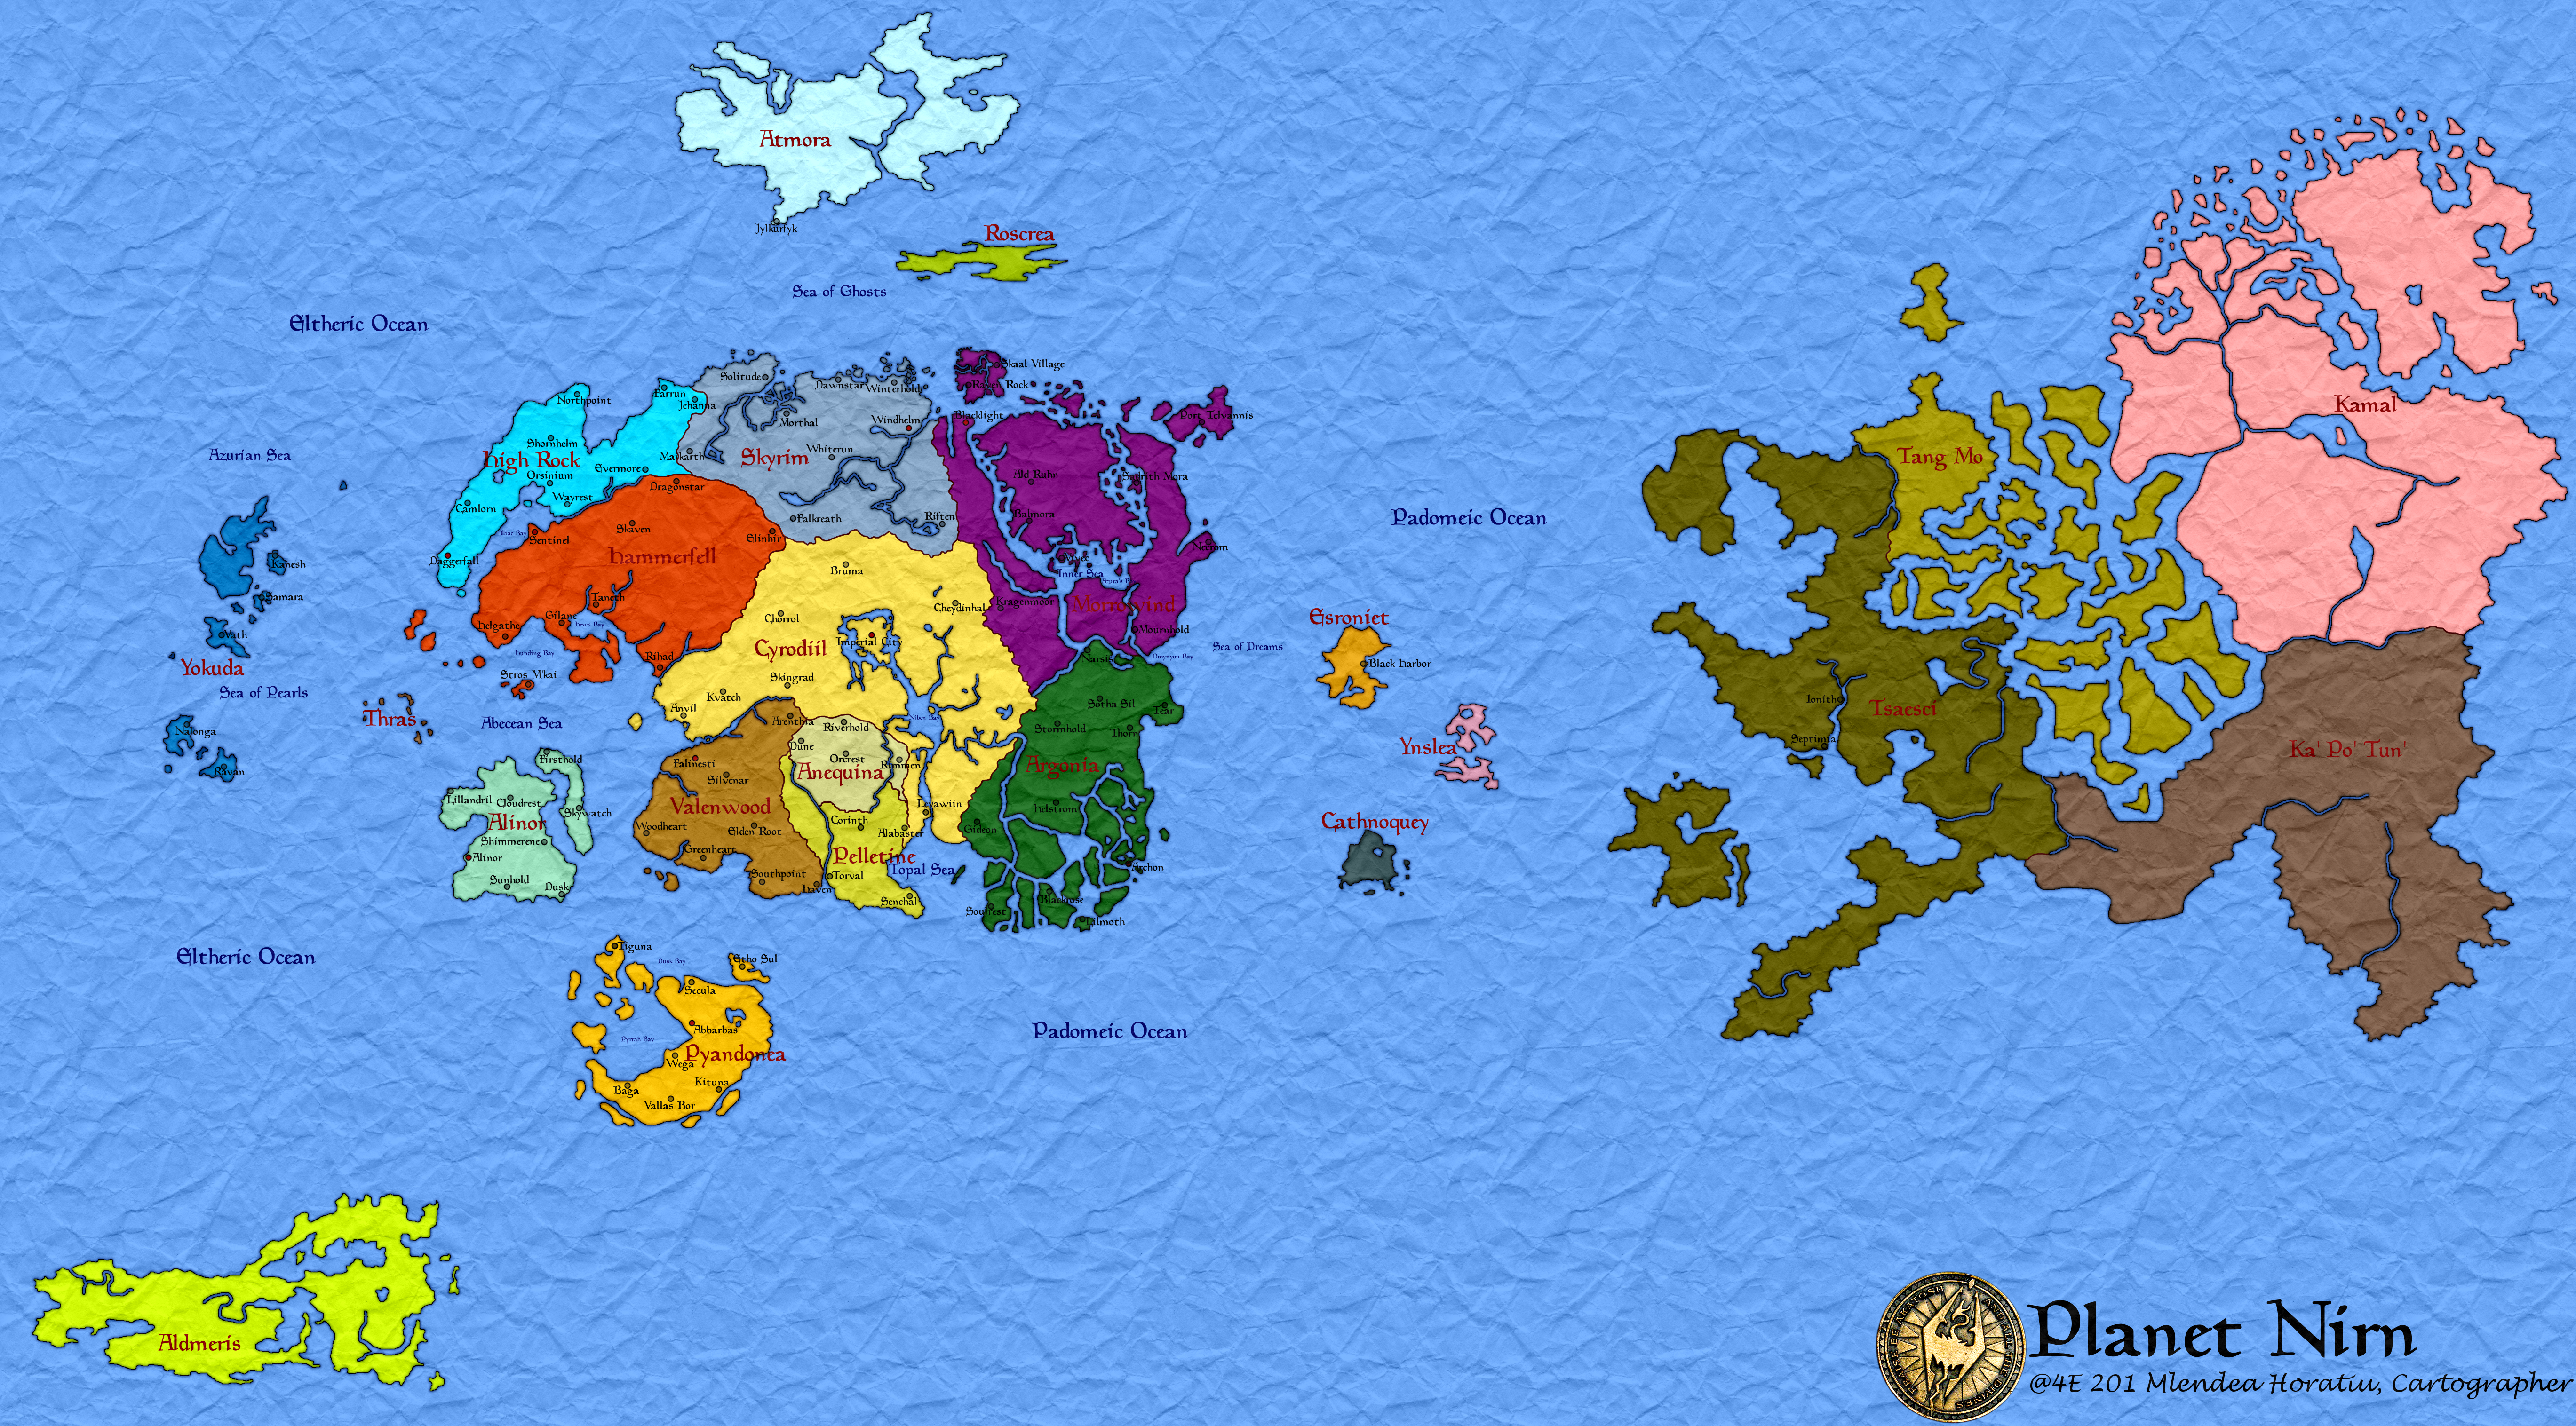 Nirn from The Elder Scrolls 5476 3032 MapPorn